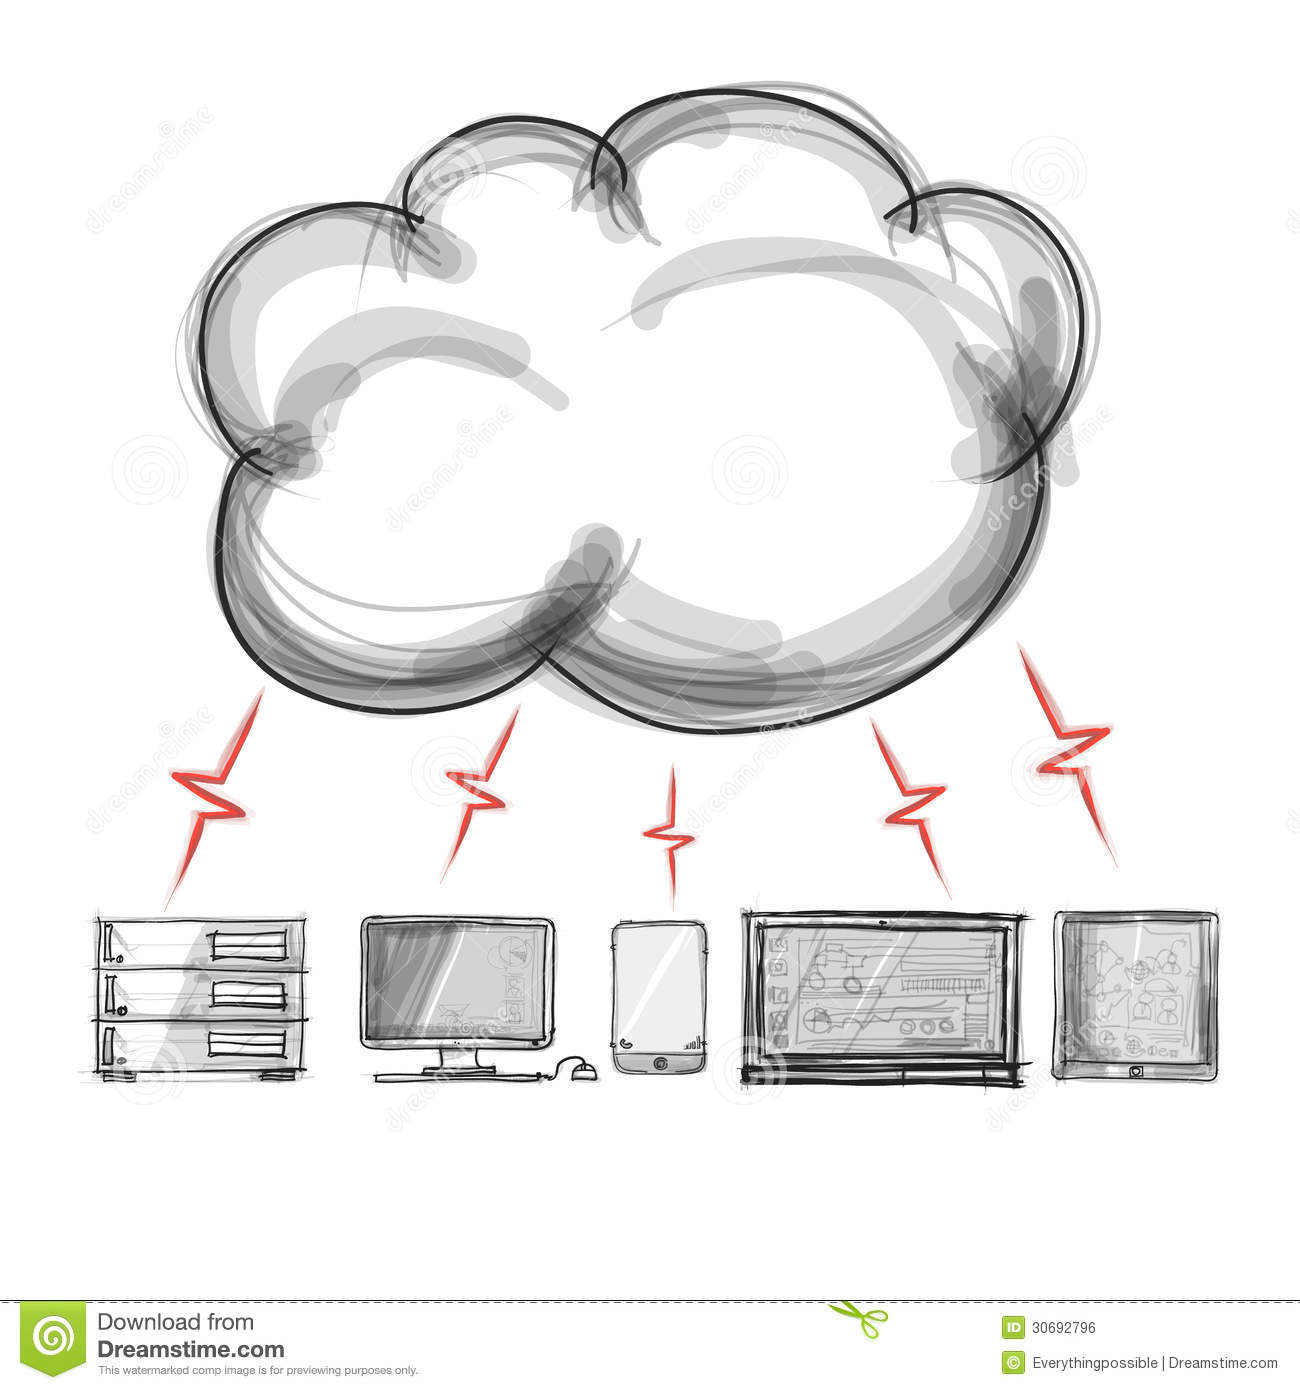 A Cloud Computing Diagram Stock Illustration Illustration